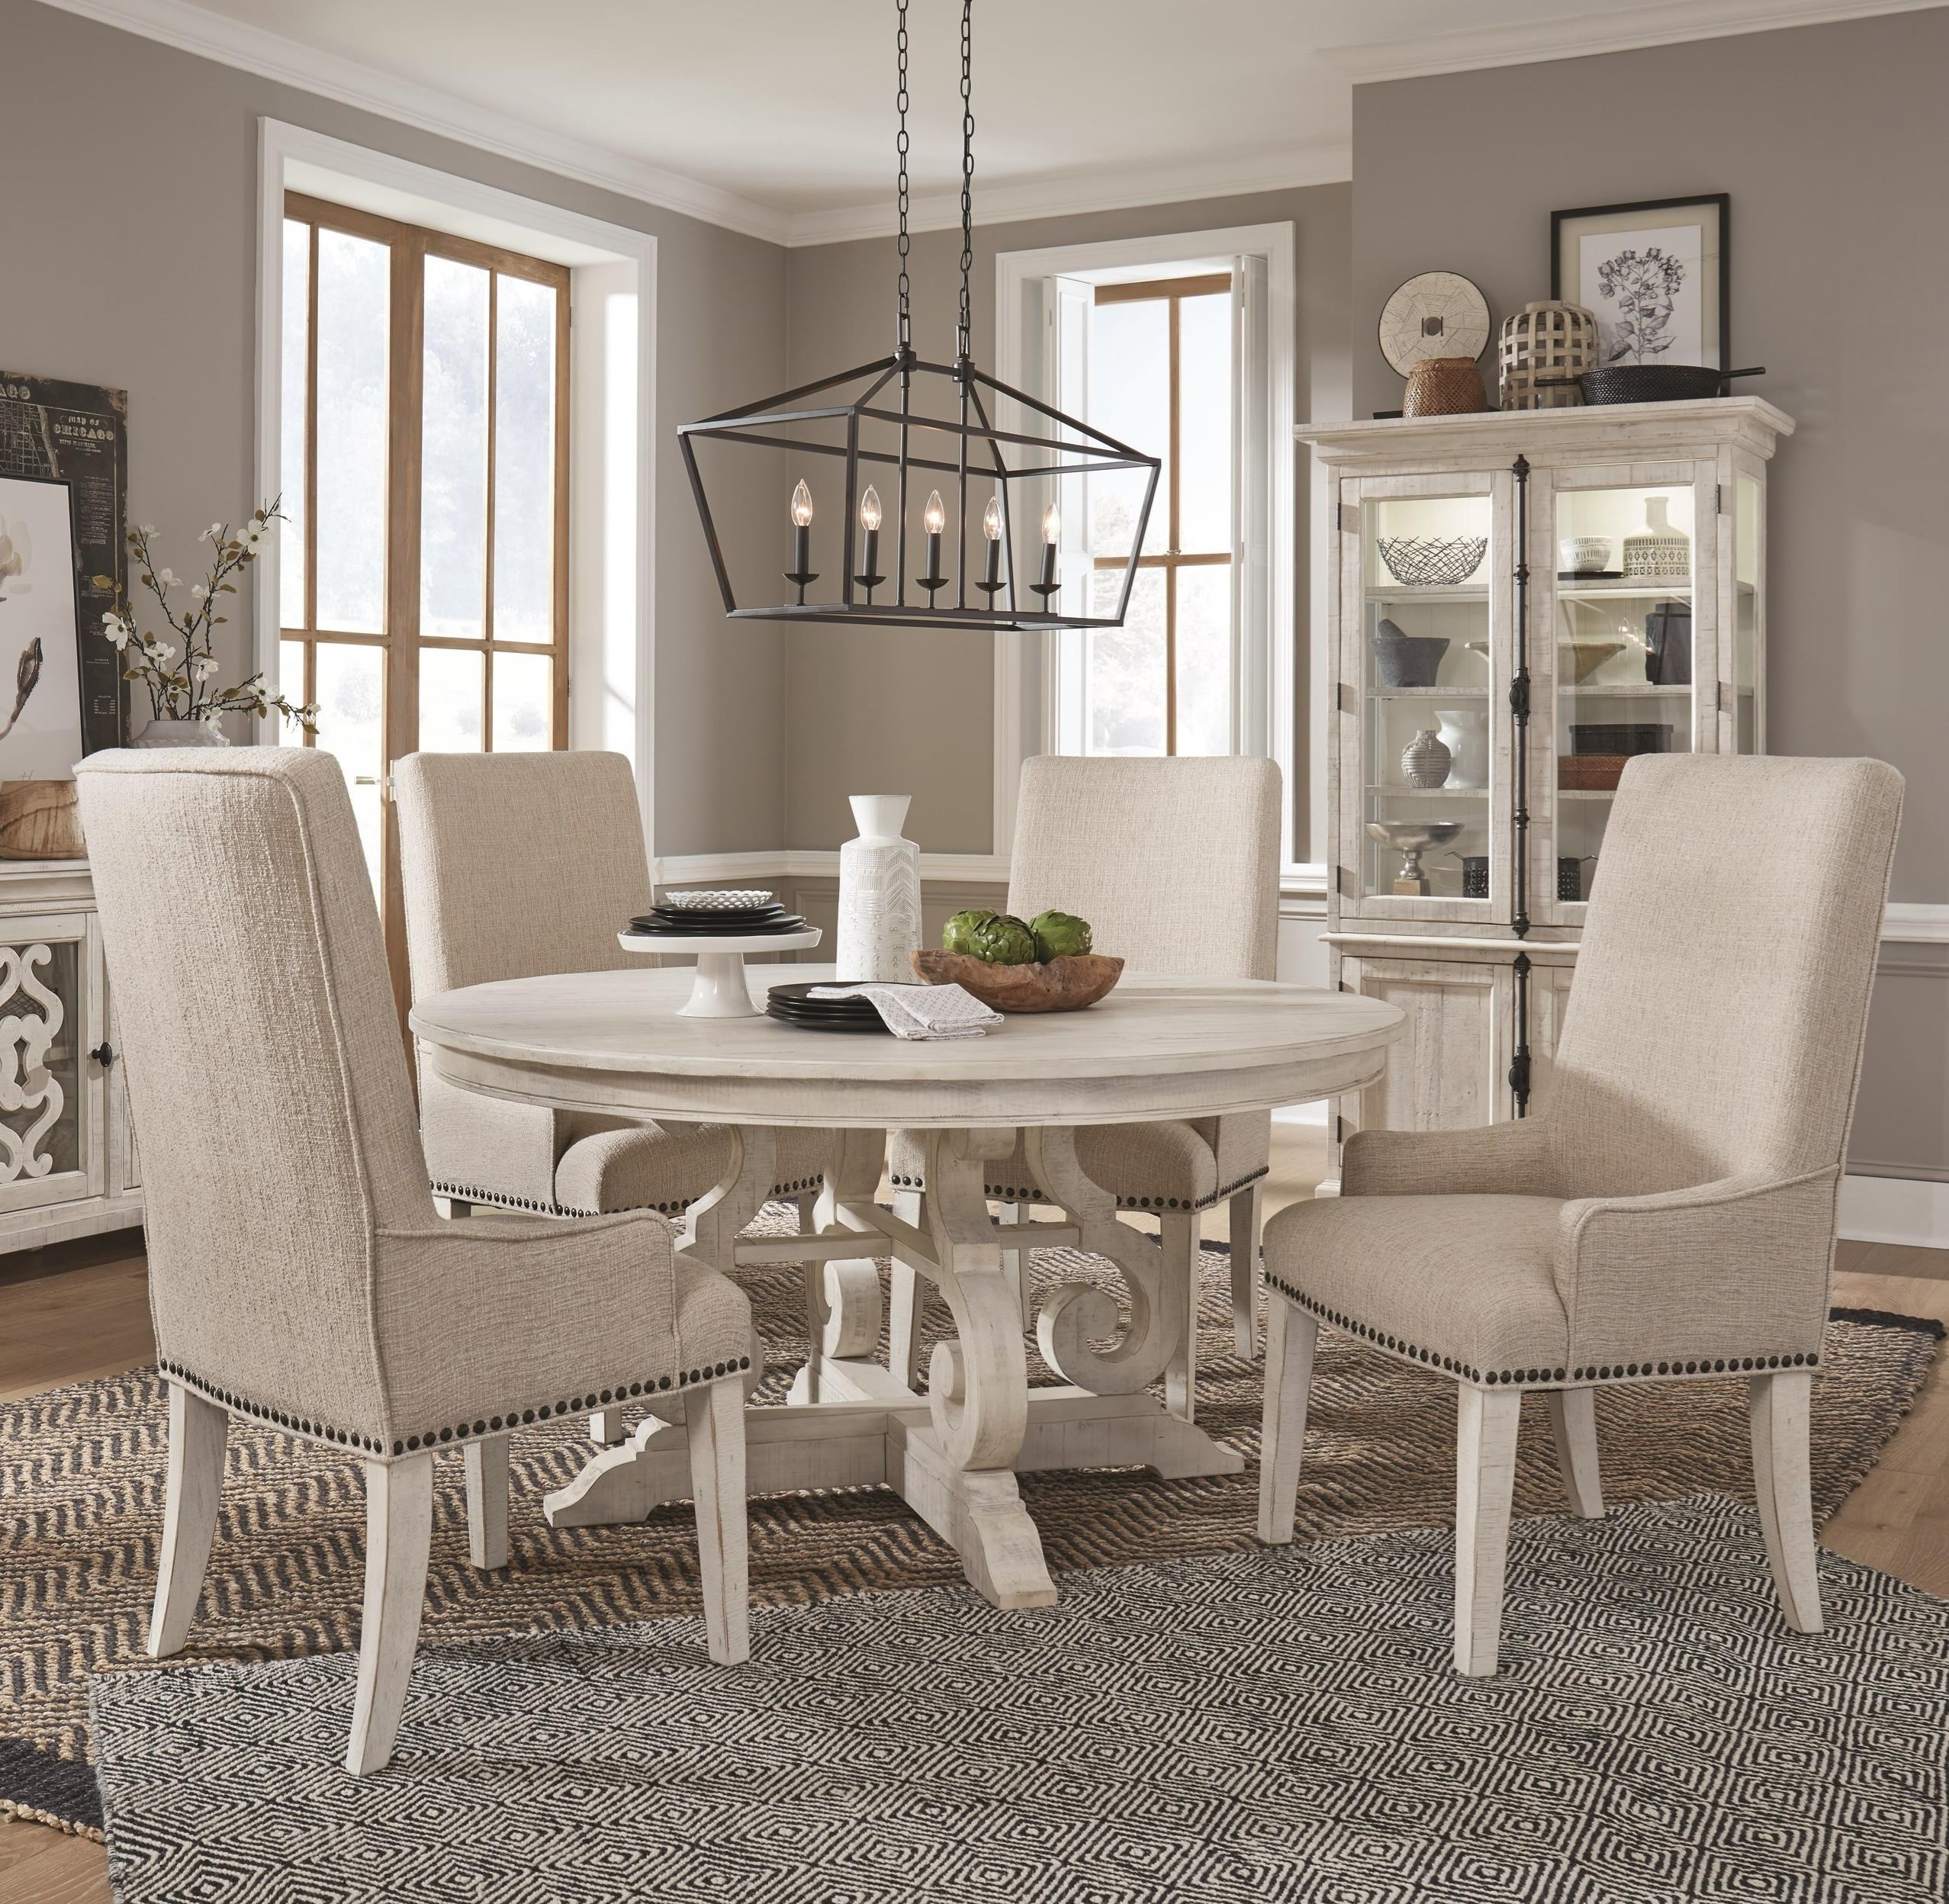 Magnussen Home Bronwyn 5 Piece Farmhouse Dining Table Set With Upholstered Arm Chairs Upper Room Home Furnishings Dining 5 Piece Sets